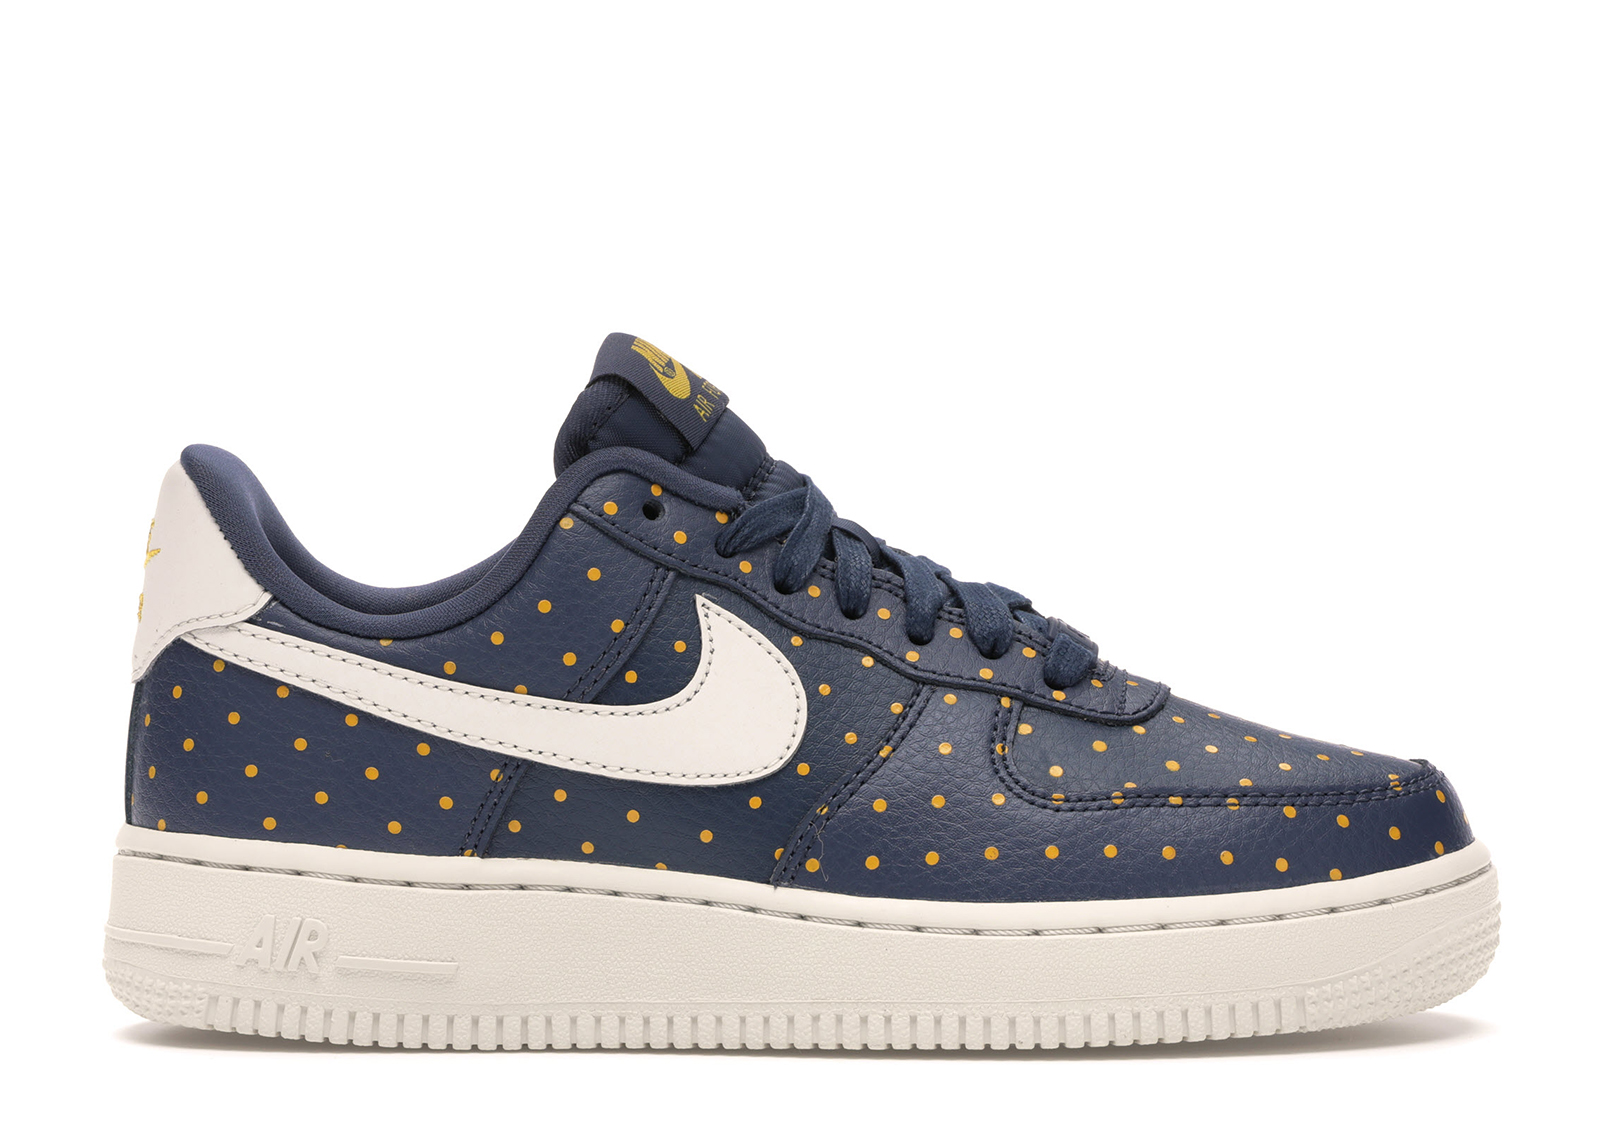 Nike Air Force 1 Low Thunder Blue